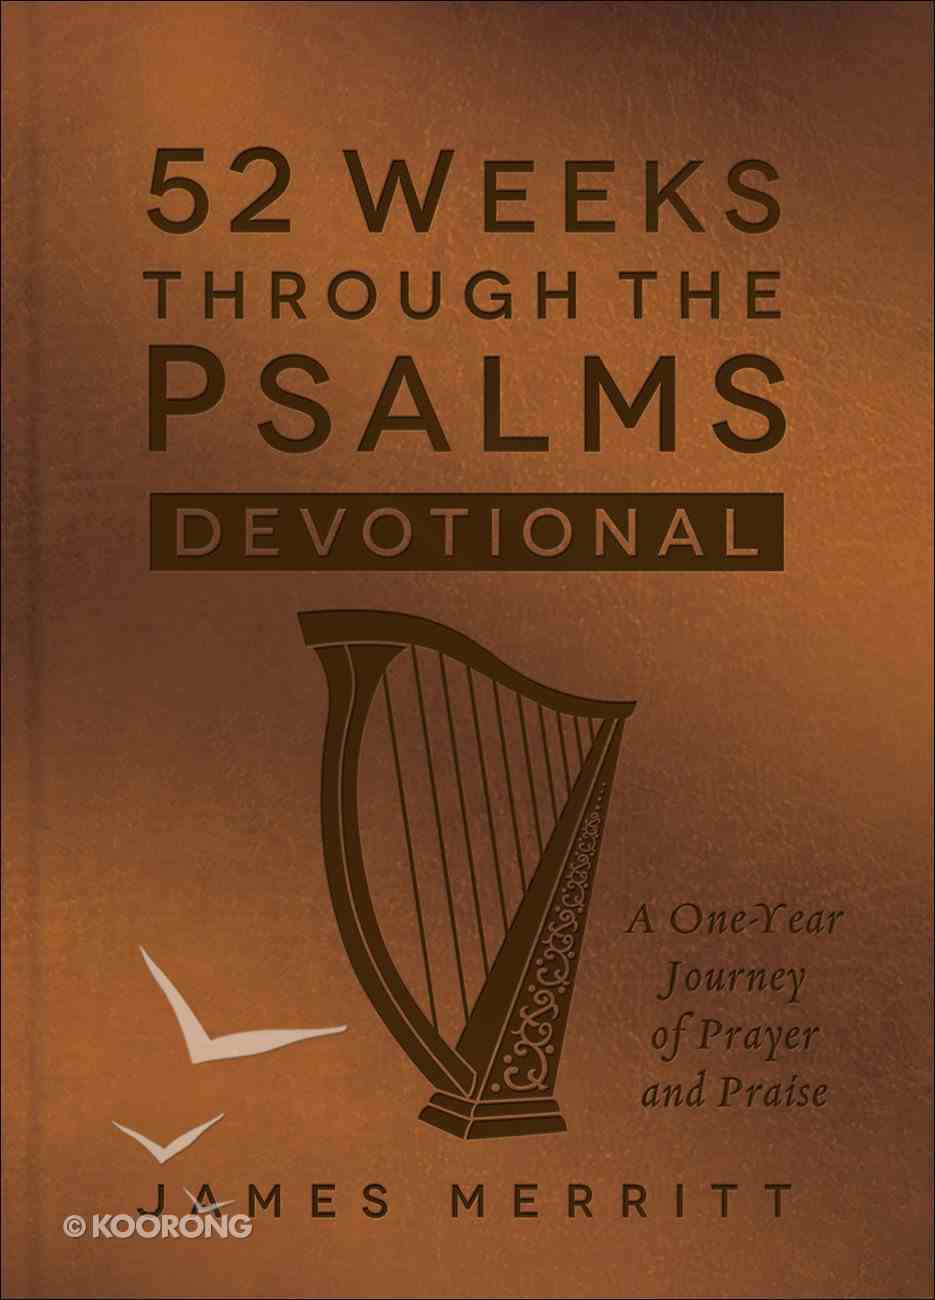 52 Weeks Through the Psalms Devotional: A One-Year Journey of Prayer and Praise Imitation Leather